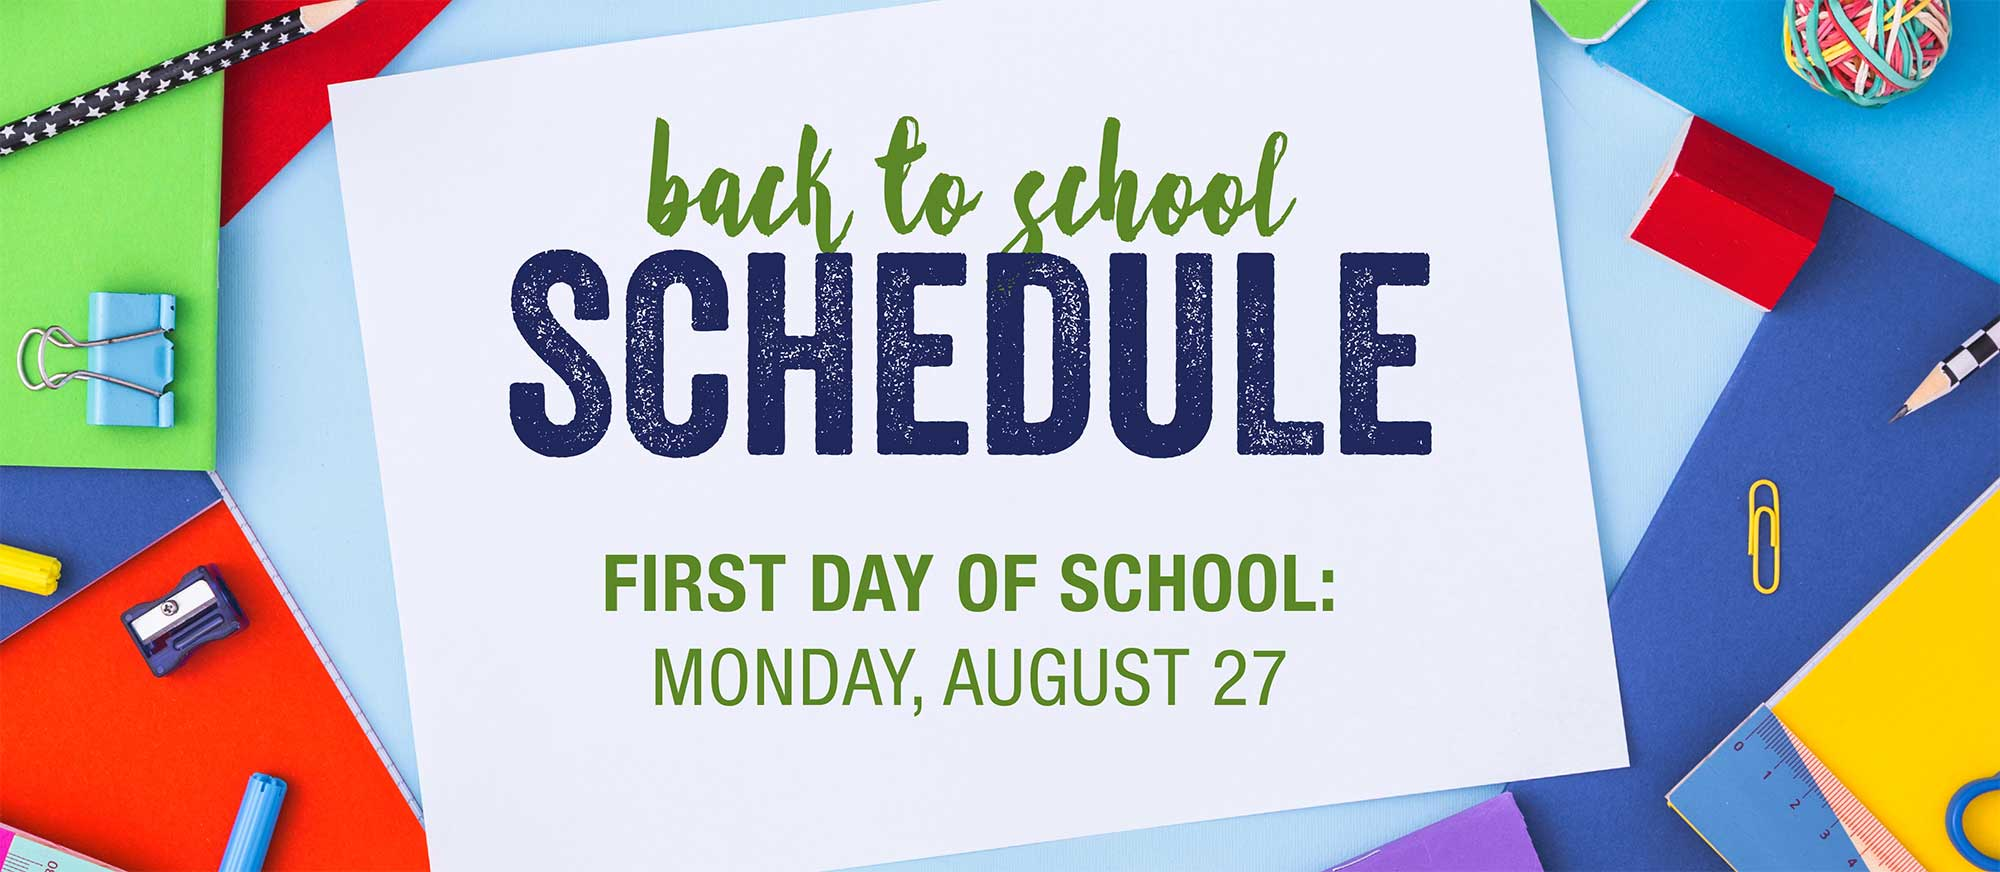 Back to School Schedule - First day of school is Monday, August 27.